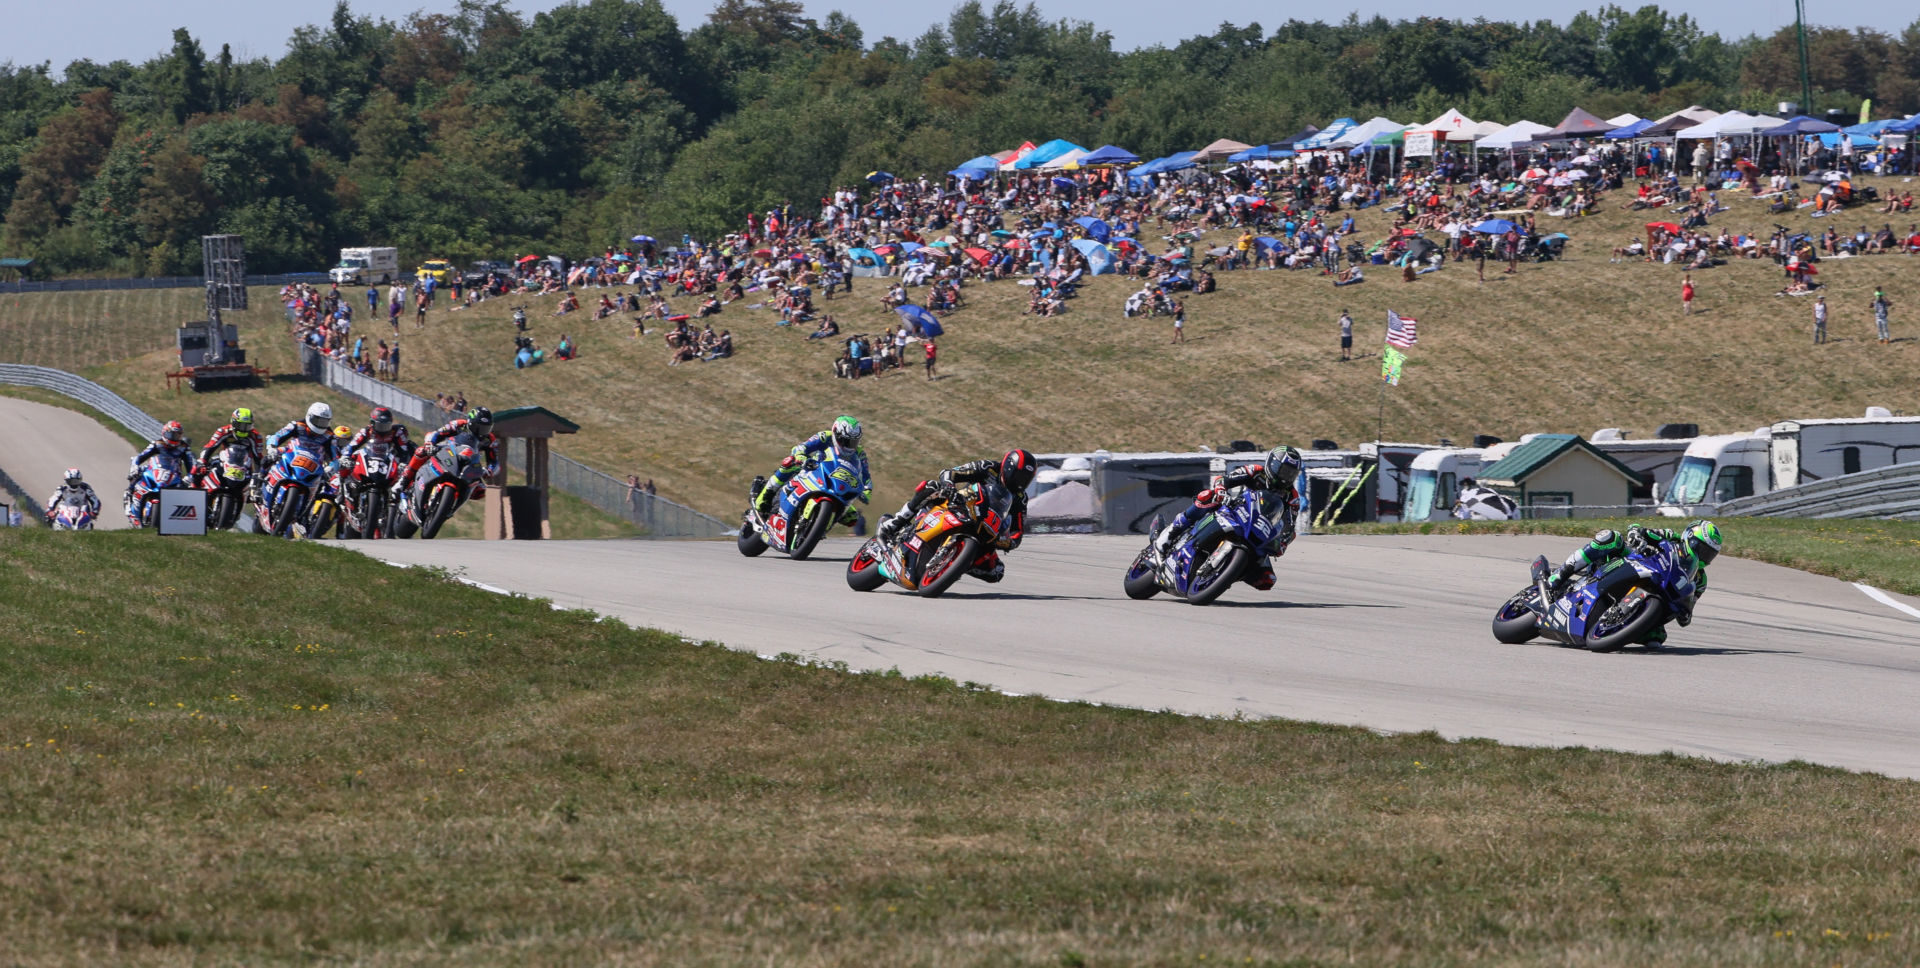 Cameron Beaubier (1) leads Jake Gagne (32), Mathew Scholtz (11), Toni Elias (24) and the rest of the field at the start of MotoAmerica HONOS Superbike Race Two at PittRace. Photo by Brian J. Nelson, courtesy MotoAmerica.